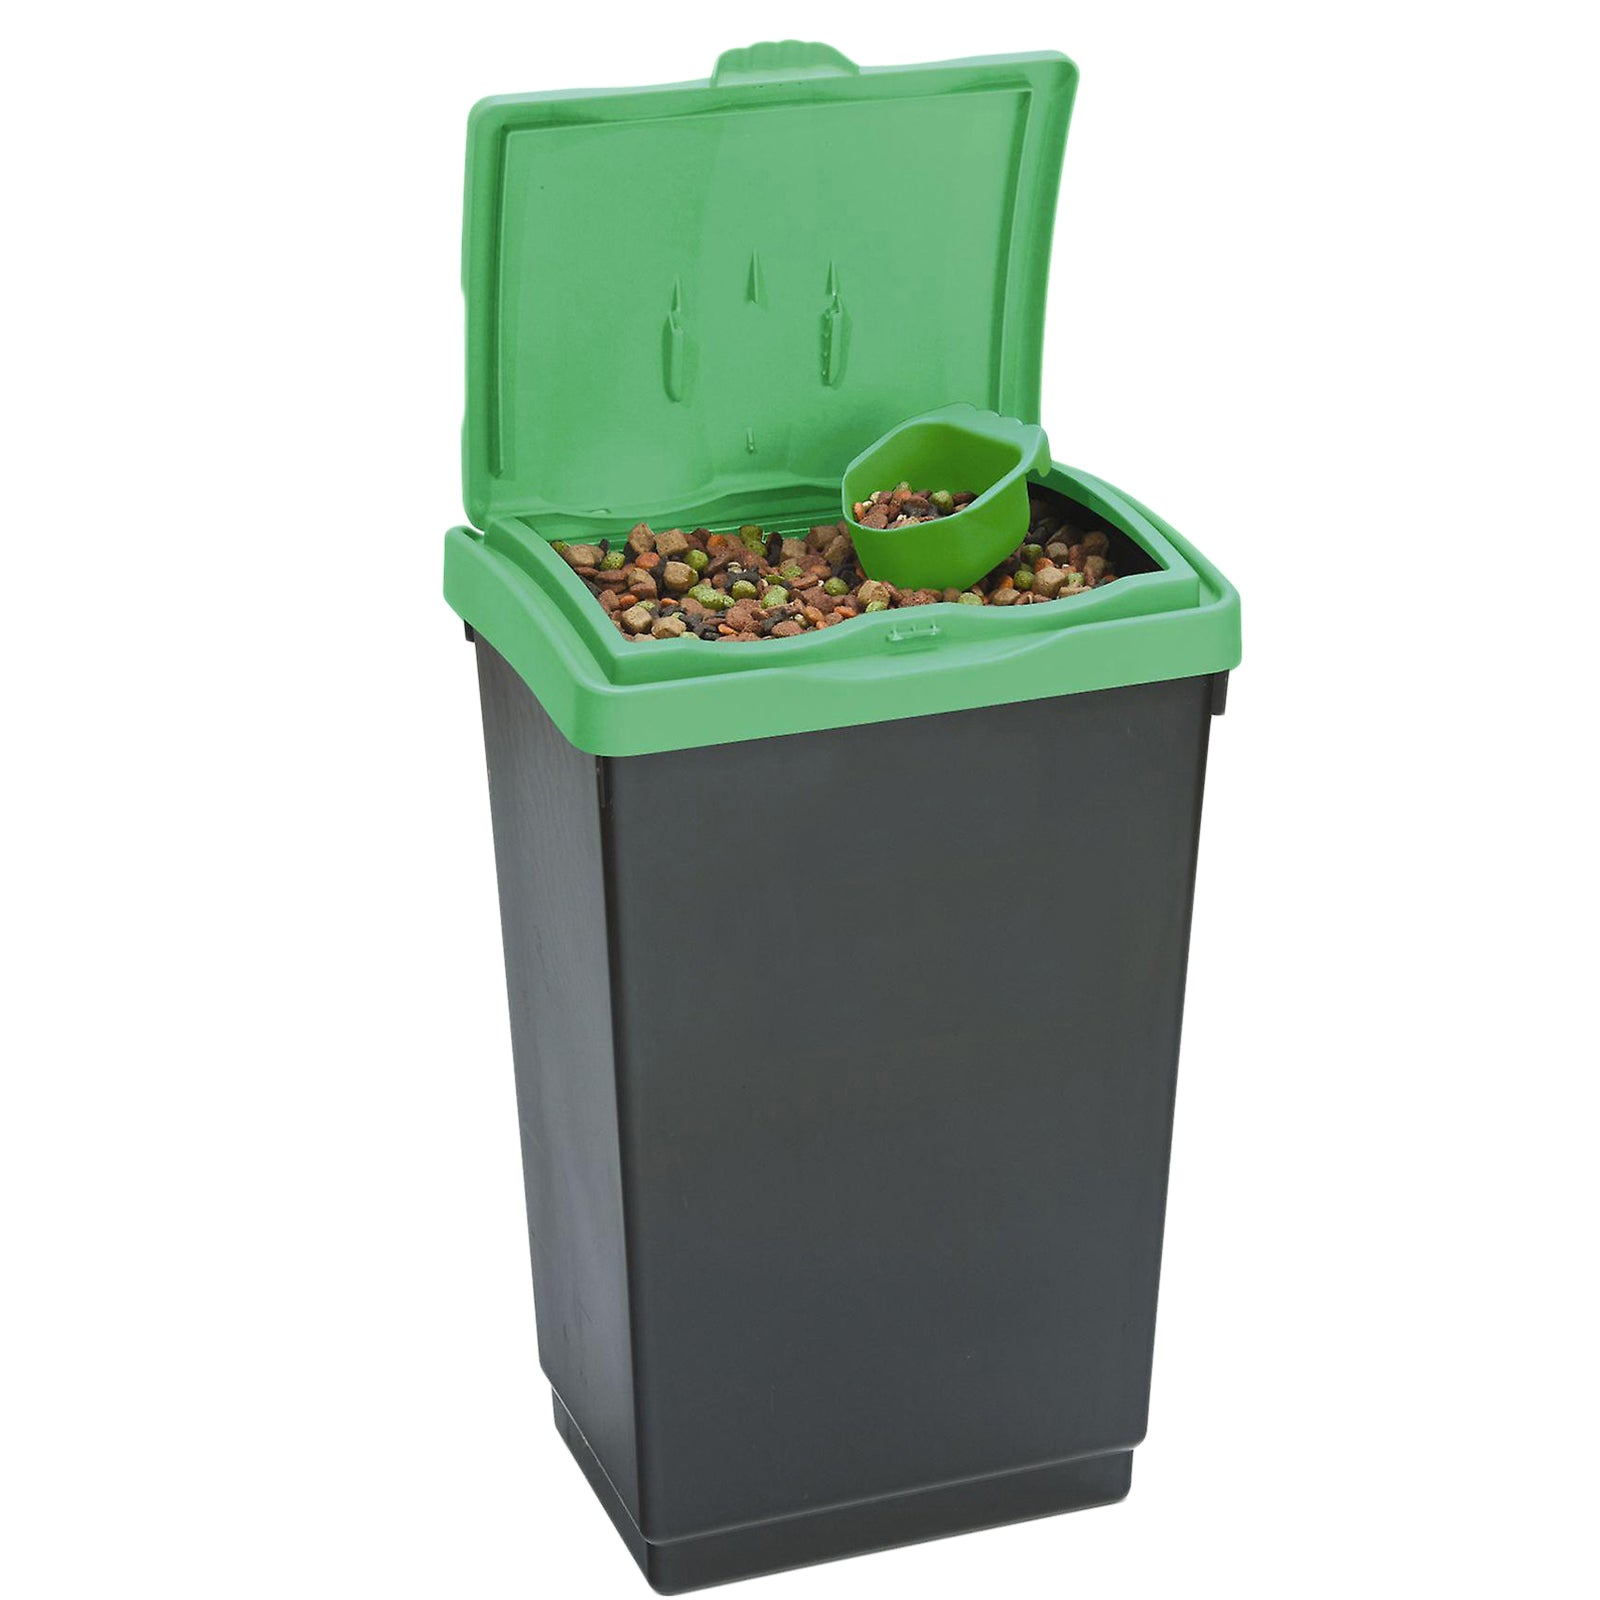 AMOS 47L Dry Bin 15kg Pet Dog Cat Food Bird Seed Feed Storage Plastic Container